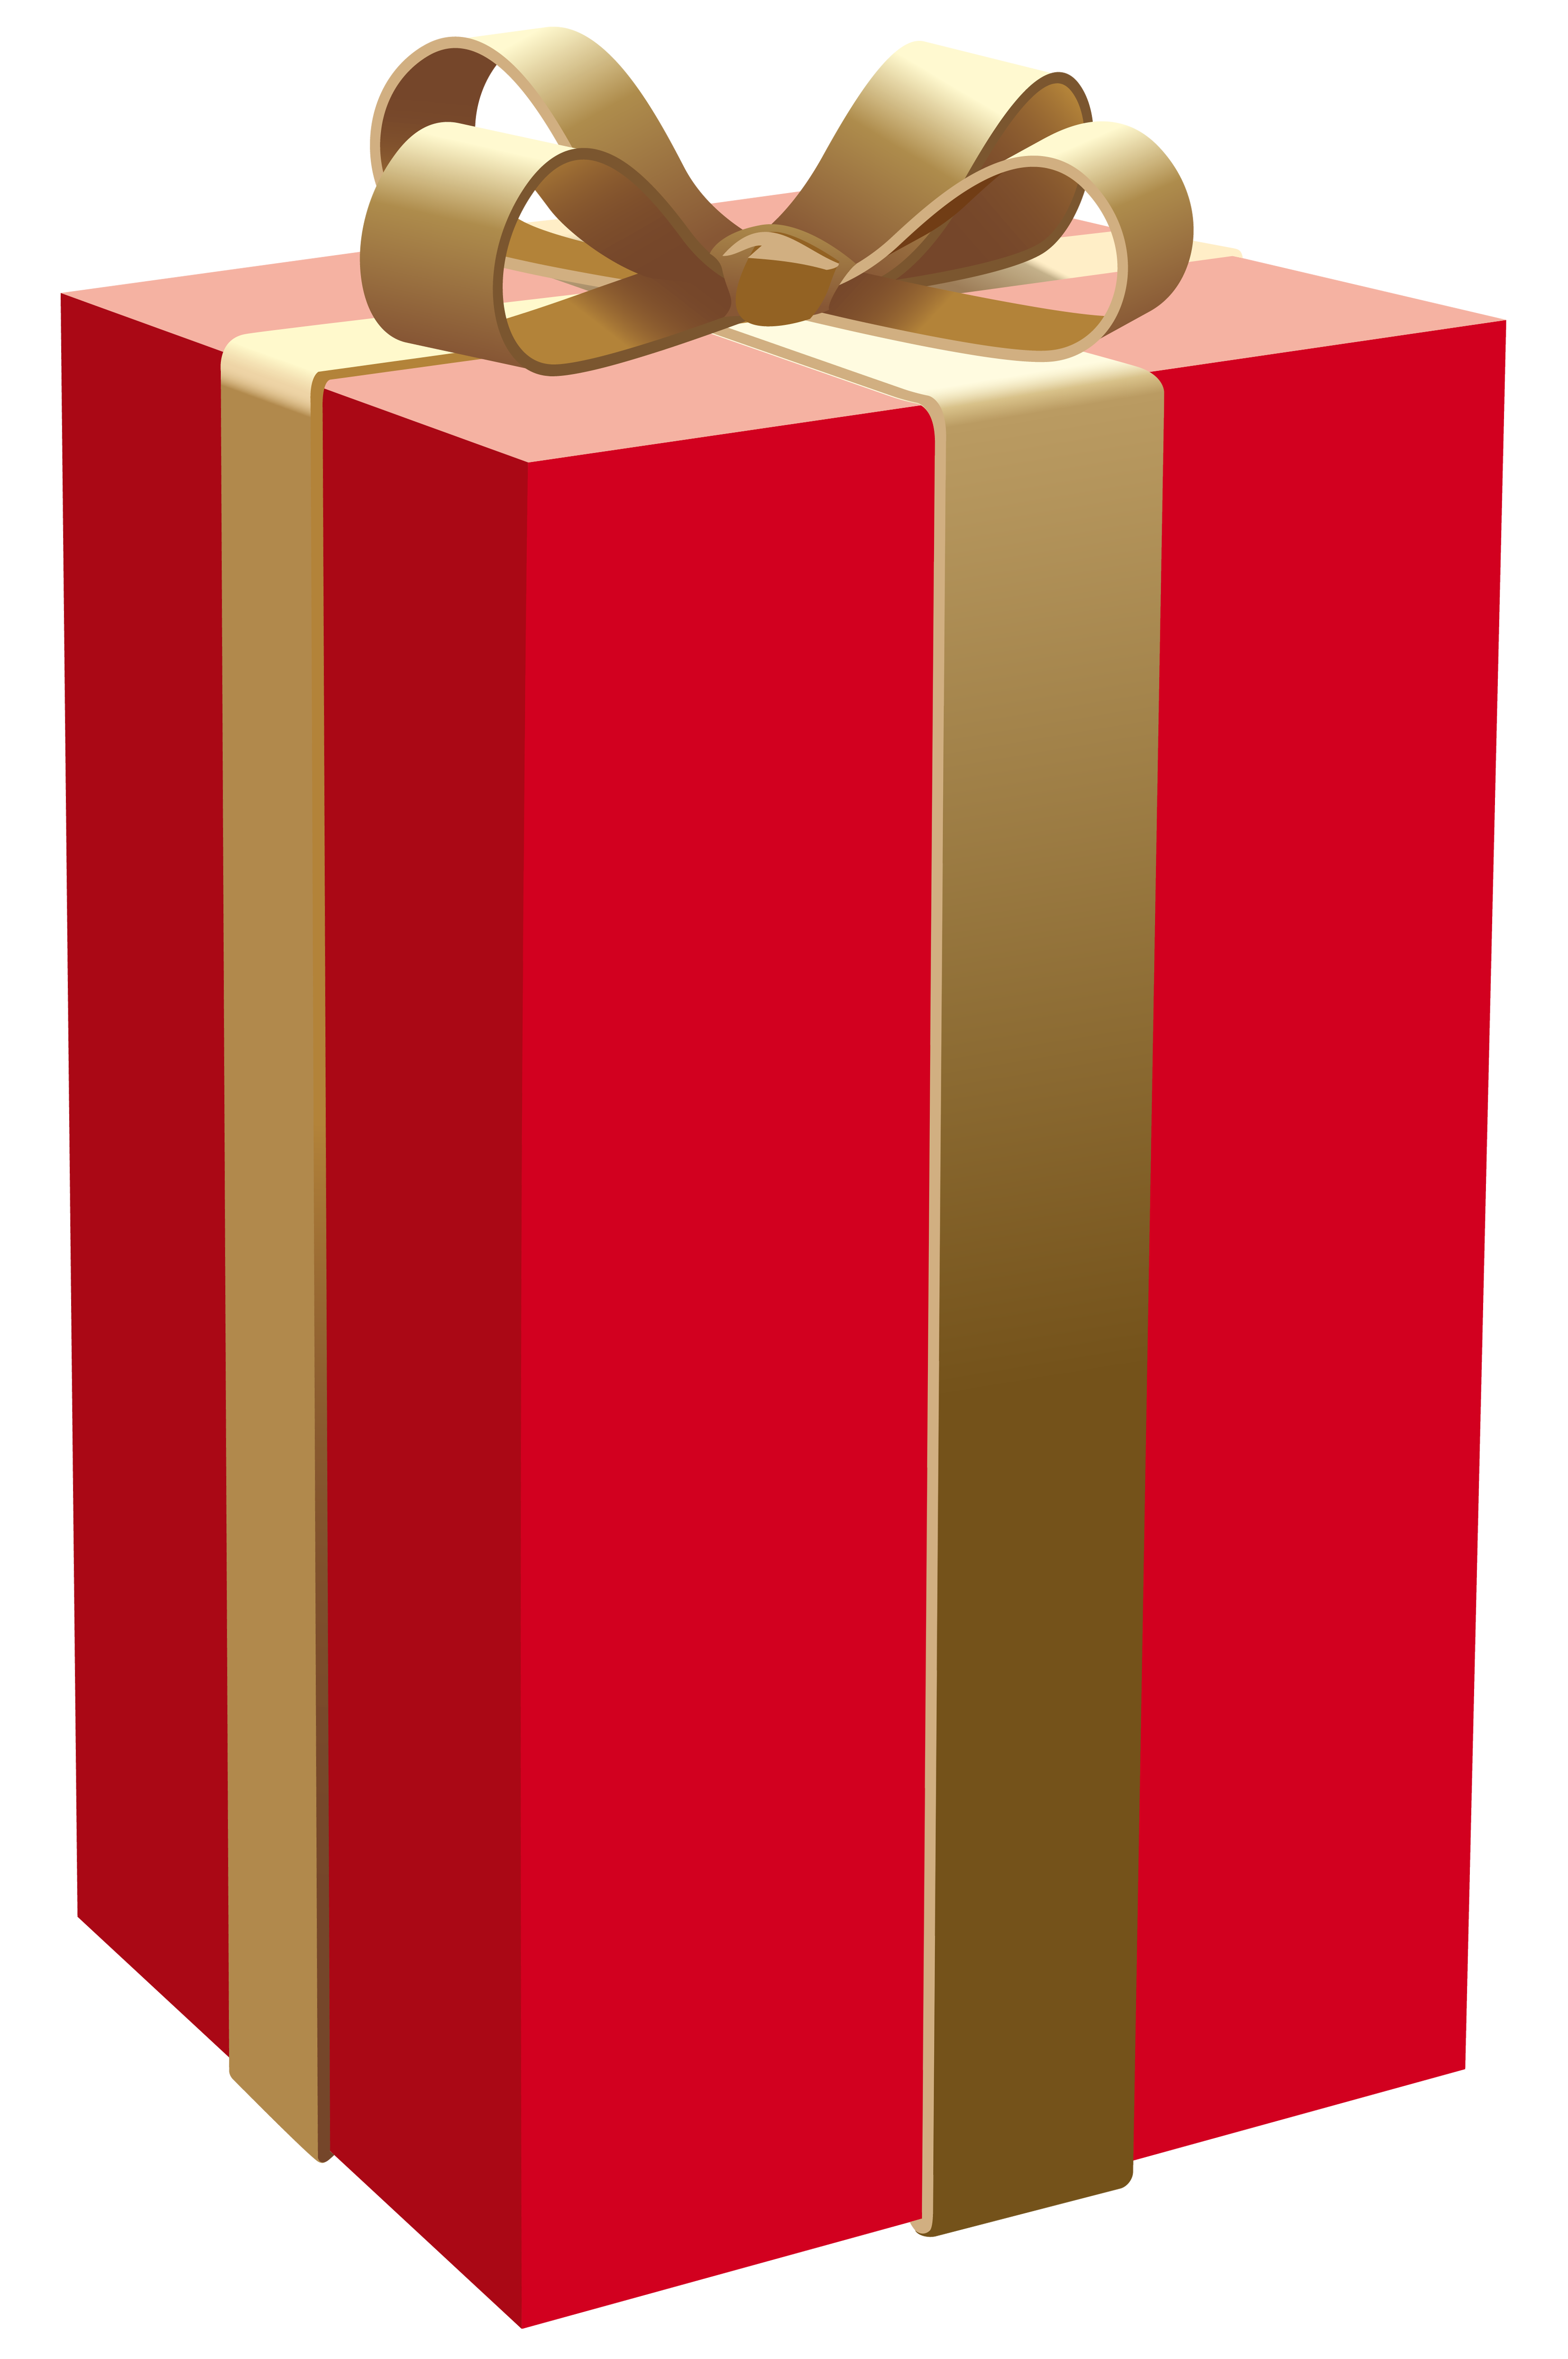 Red box png best. Gift clipart rectangle